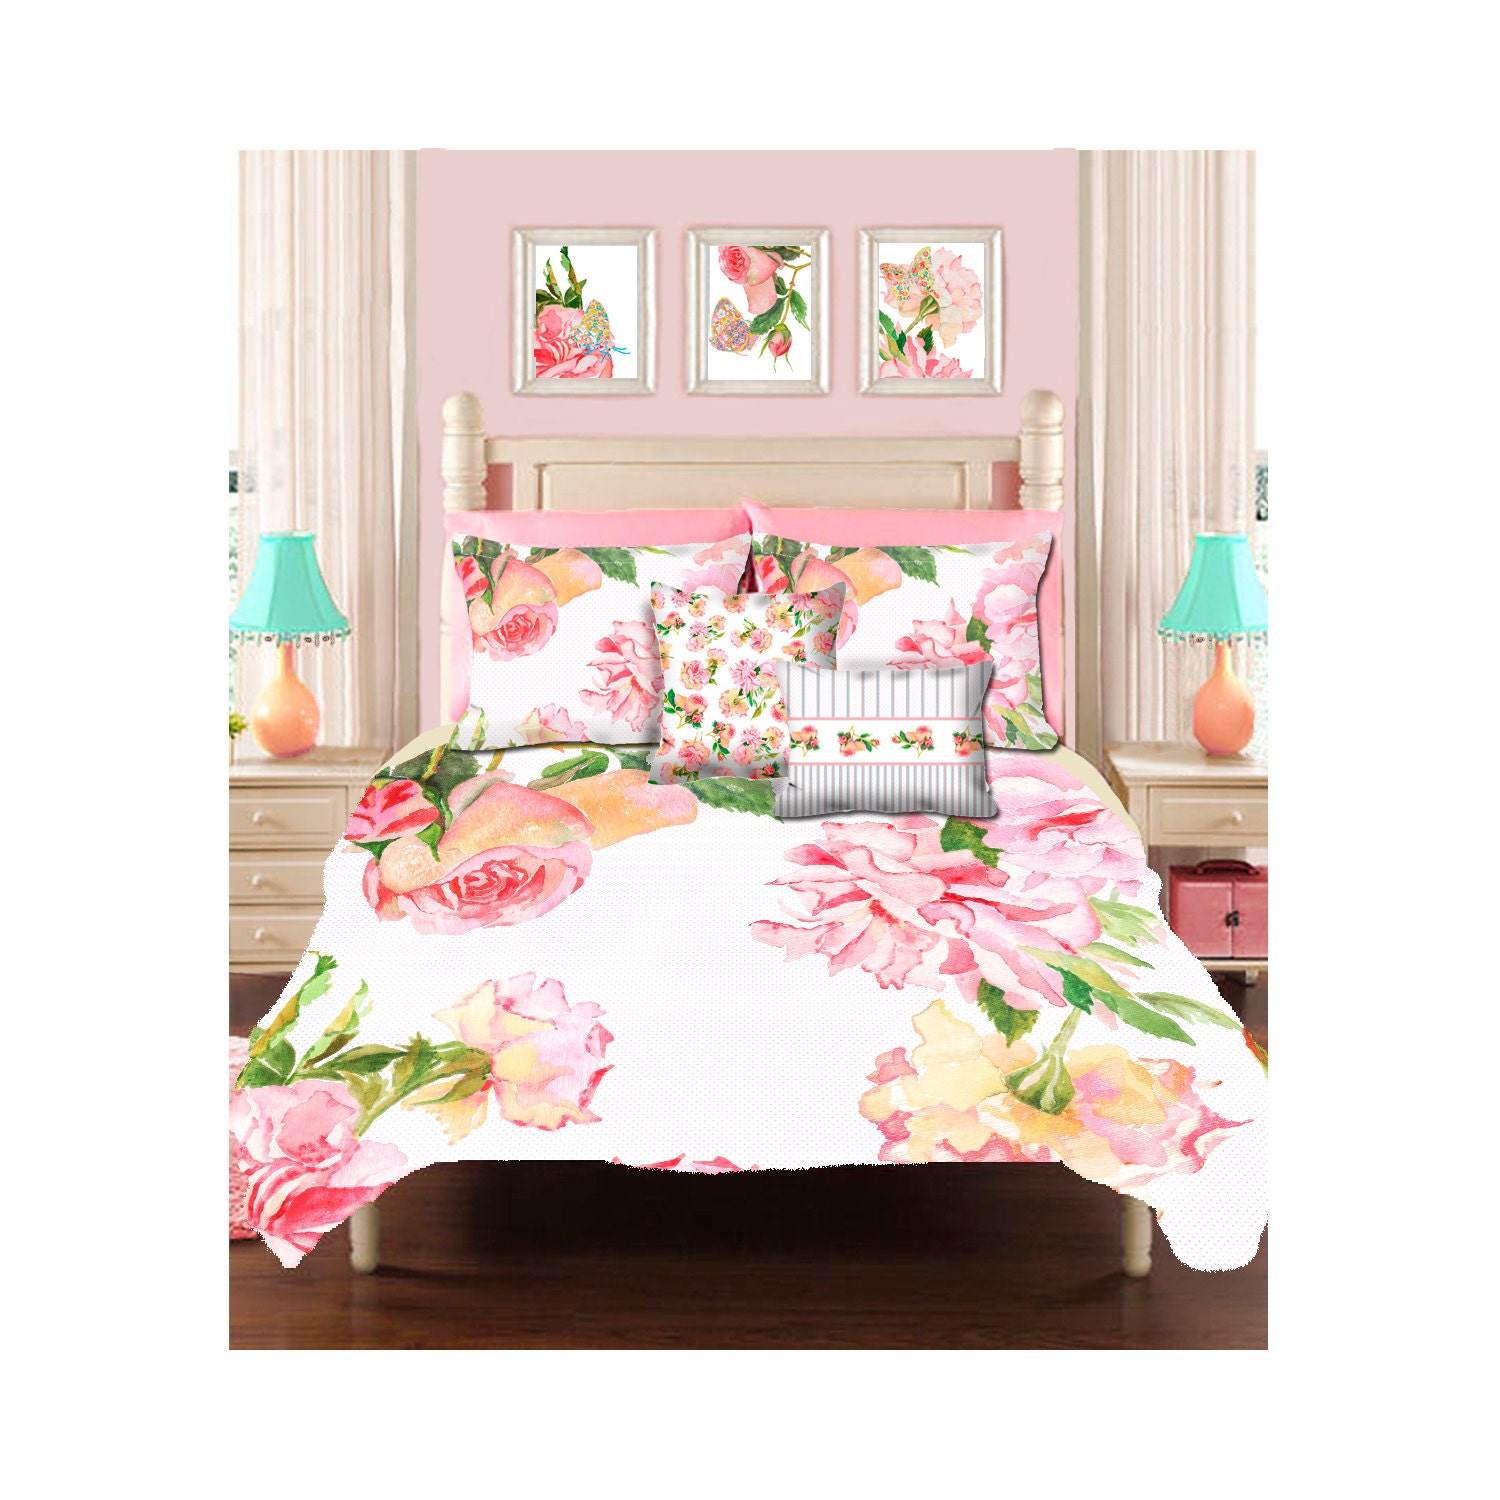 Bed sheets for teenagers - Shabby Chic Bedding Teen Bedding Shabby Chic Duvet Girls Duvet Cover Little Girl Bedding Rose Duvet Cover Queen Duvet Kids Bedding Bedroom